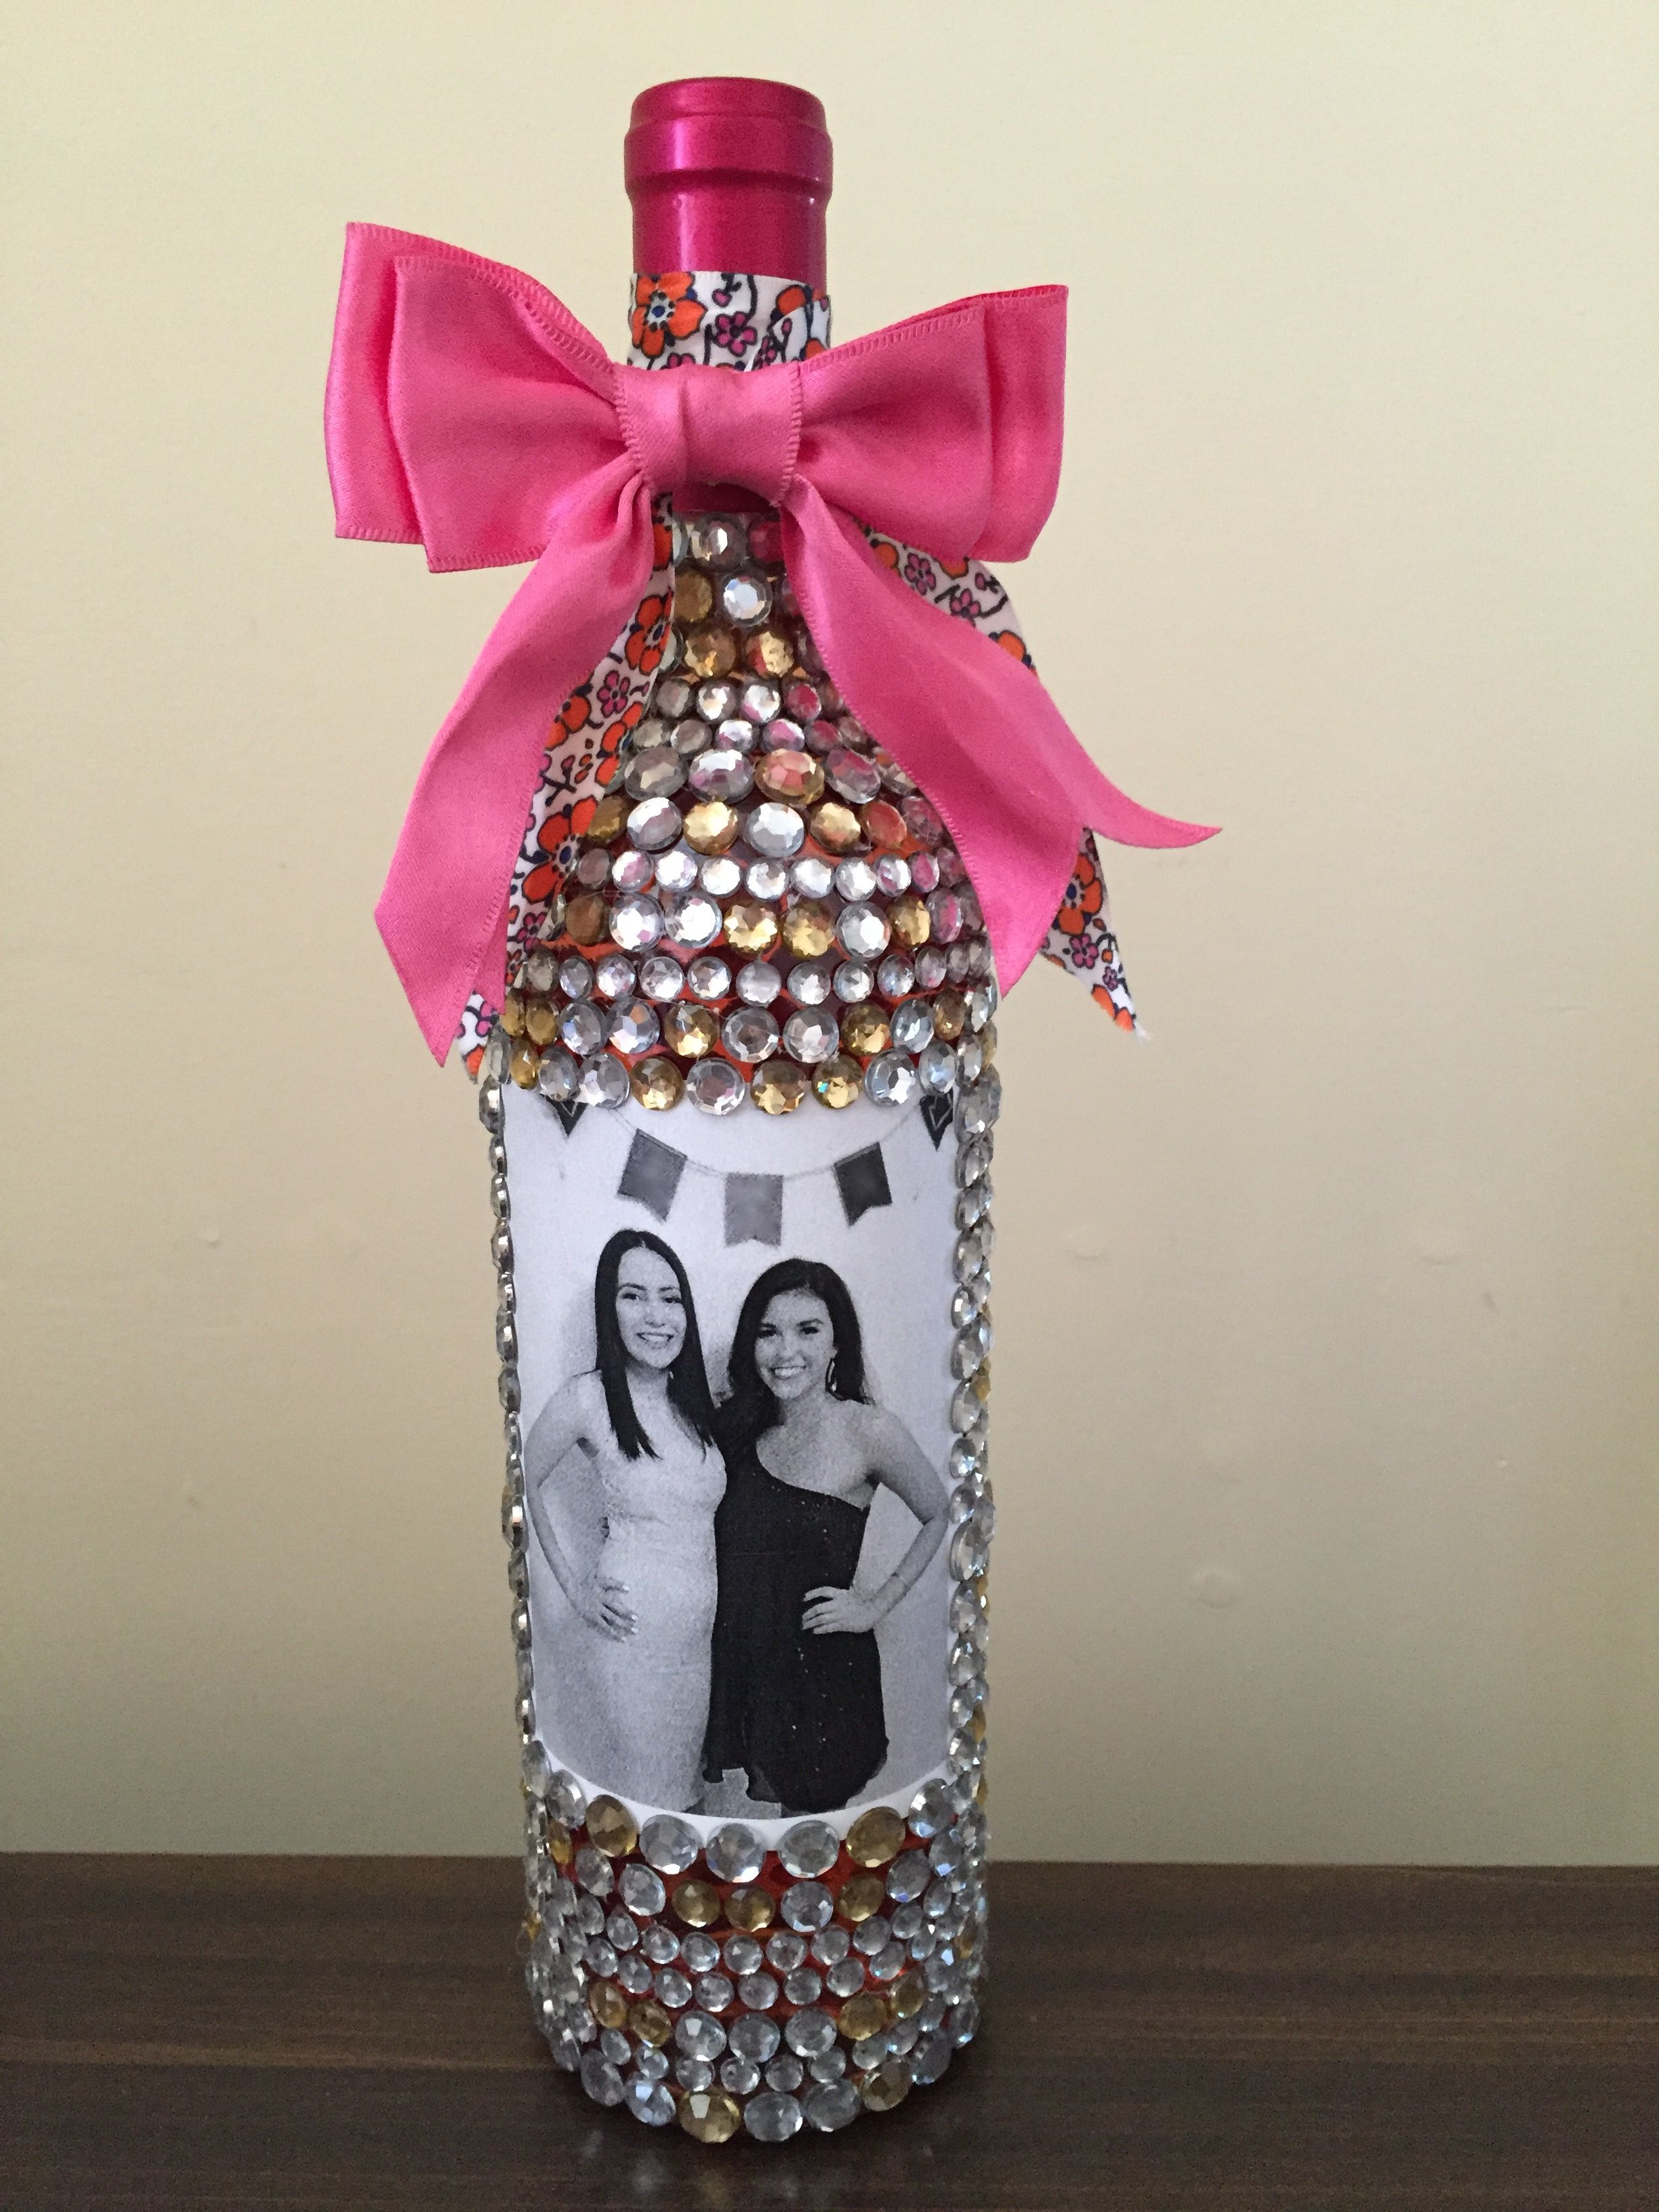 Very Intricate But Absolutely Worth It For My Best Friends 21st Birthday Bedazzled Wine Bottle Present Girls